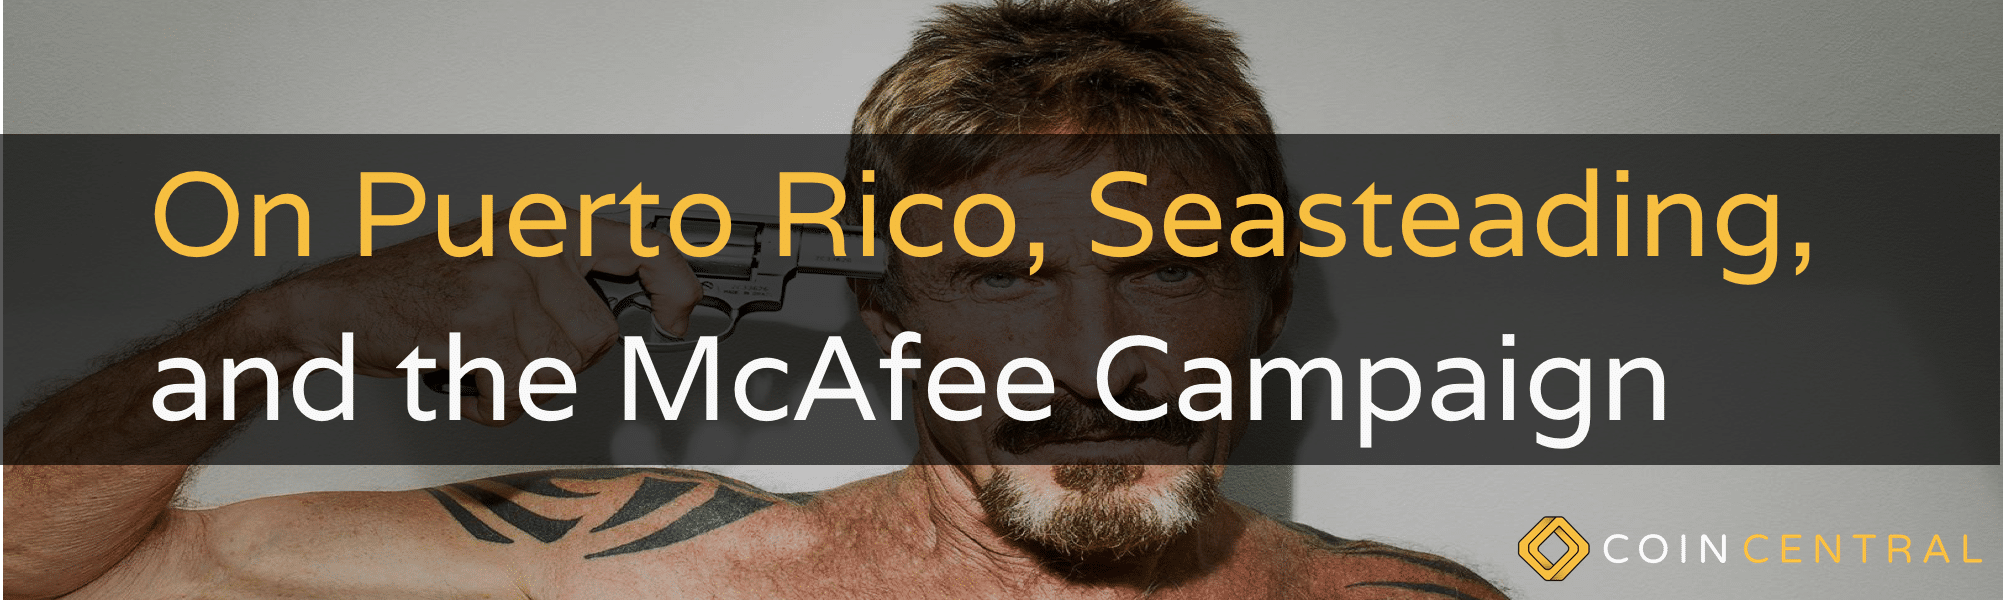 puerto rico, seasteading, mcafee